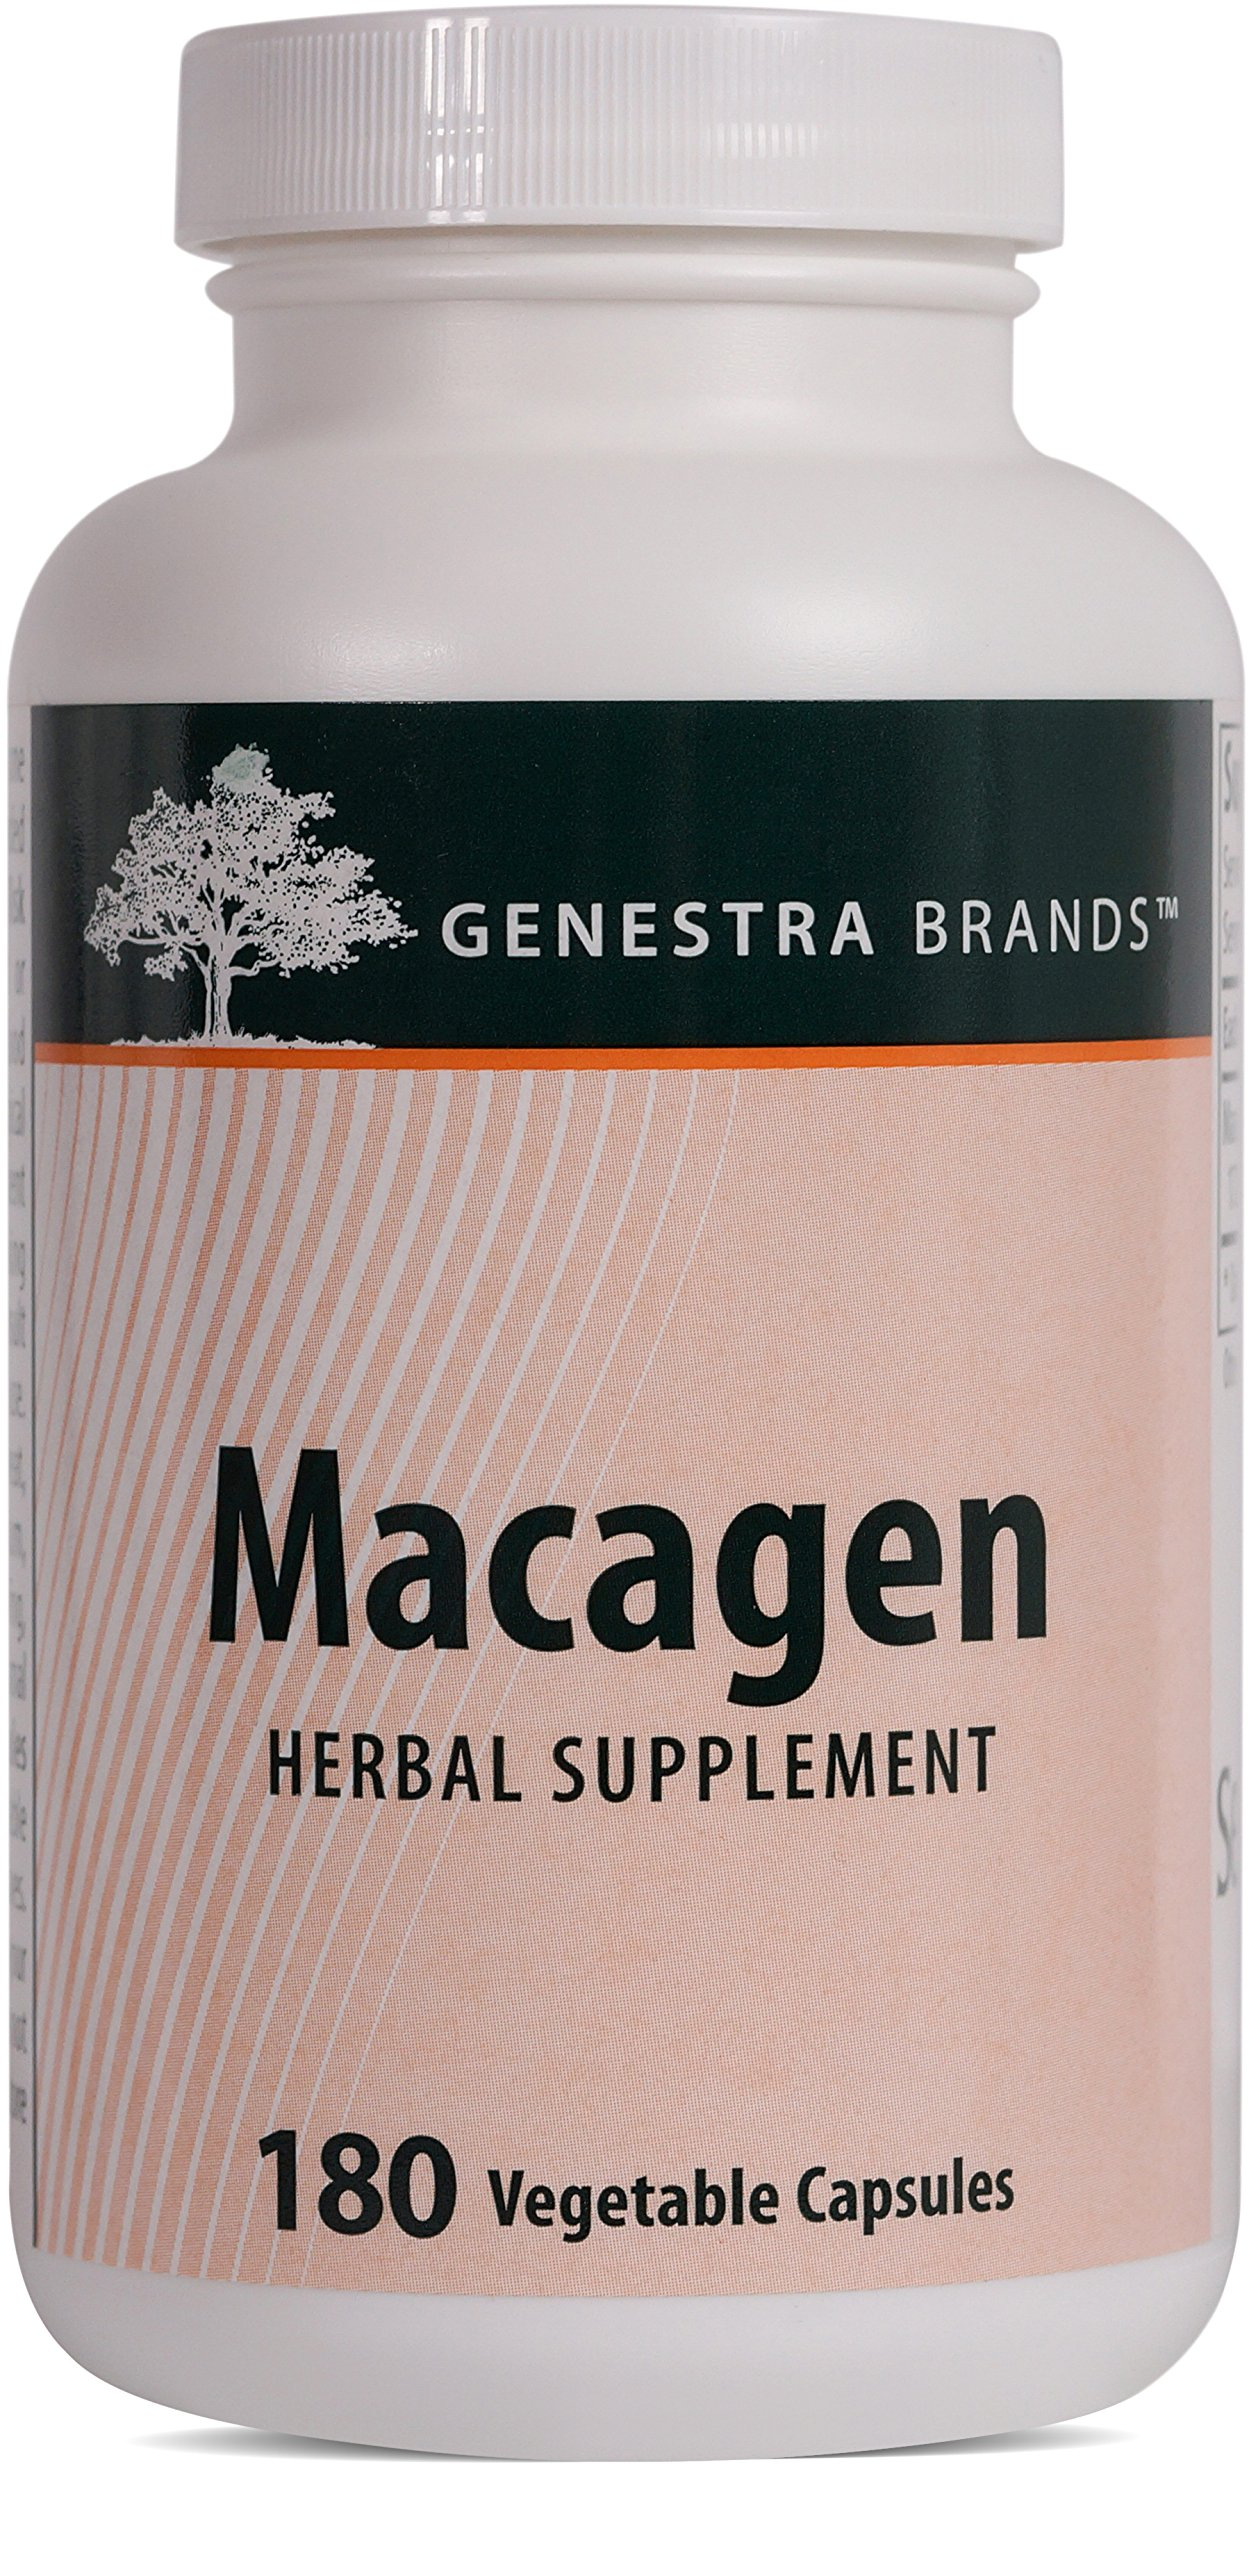 Genestra Brands - Macagen - Maca Root Supplement - 180 Capsules